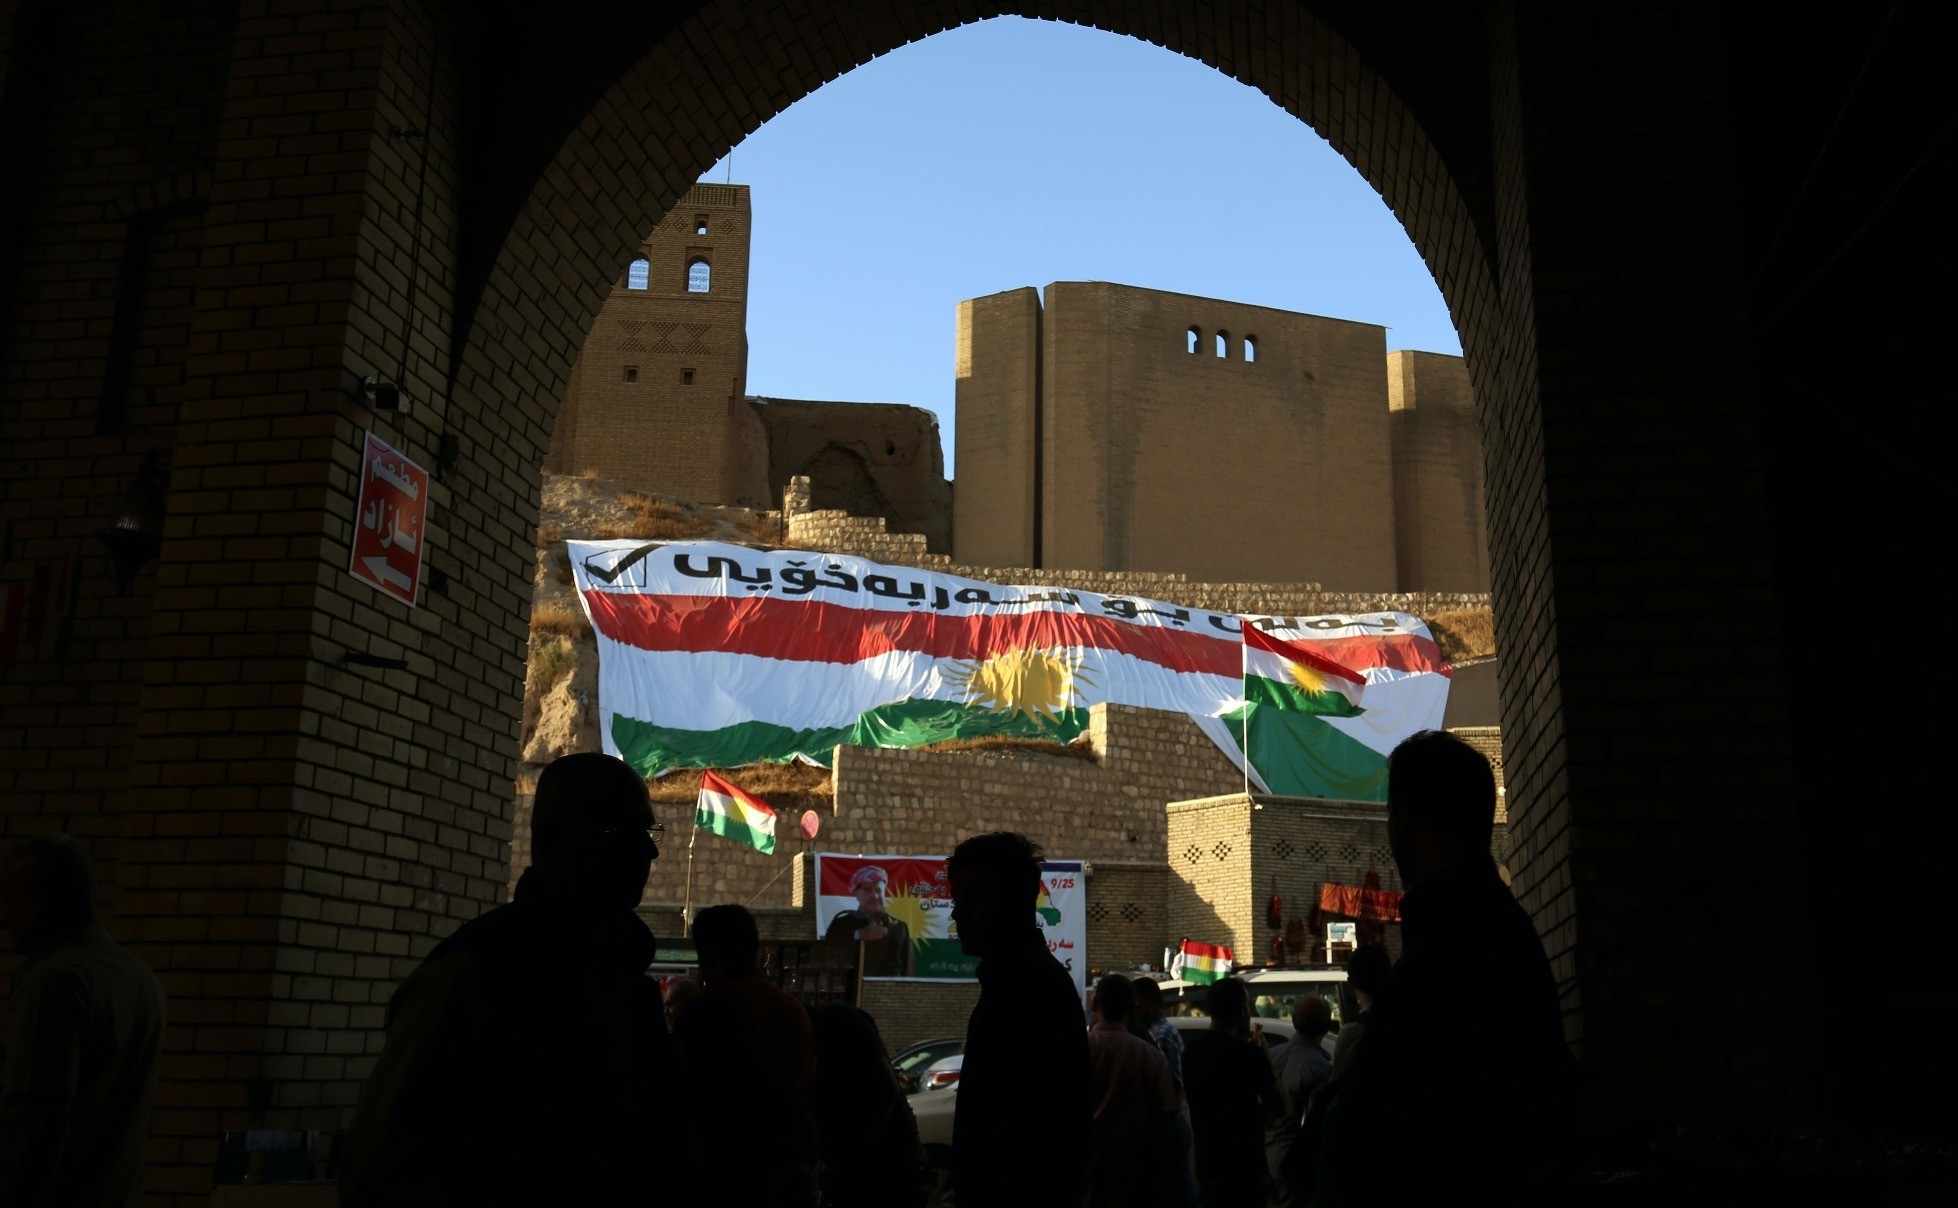 Iraqis walk in the square in the citadel in Irbil, the capital of the autonomous KRG in northern Iraq, just before the independence referendum, on Sept. 23, 2017. The voting induced an Iraqi offensive to take over contested areas.